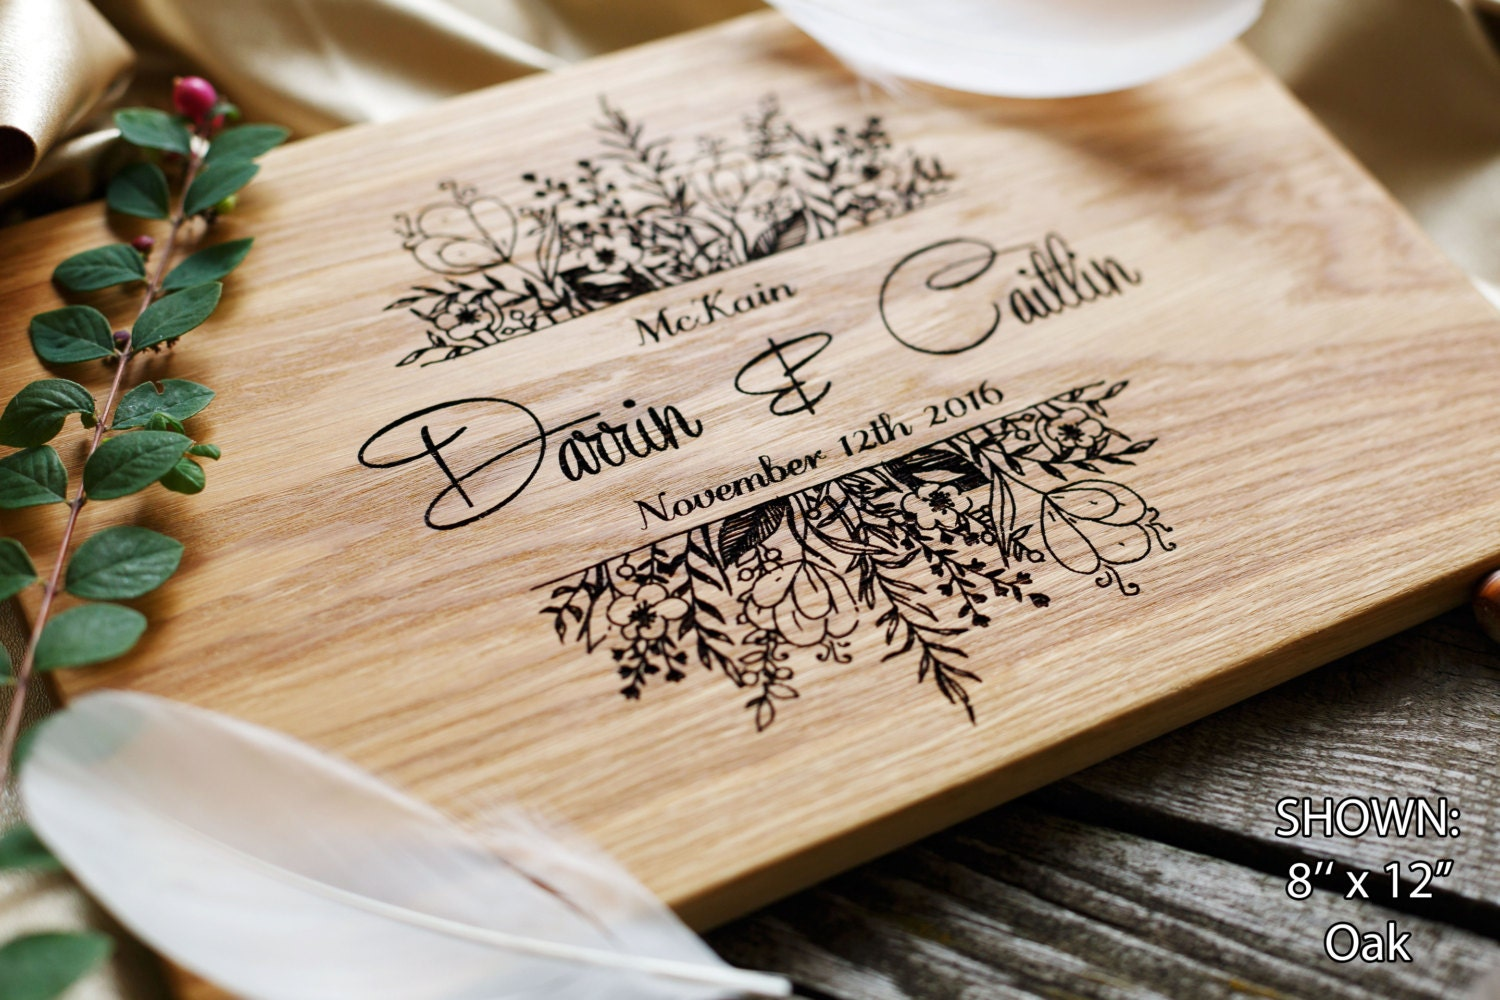 Unique Gifts Wedding: Personalized Cutting Board Wedding Gift Custom Wedding Gift